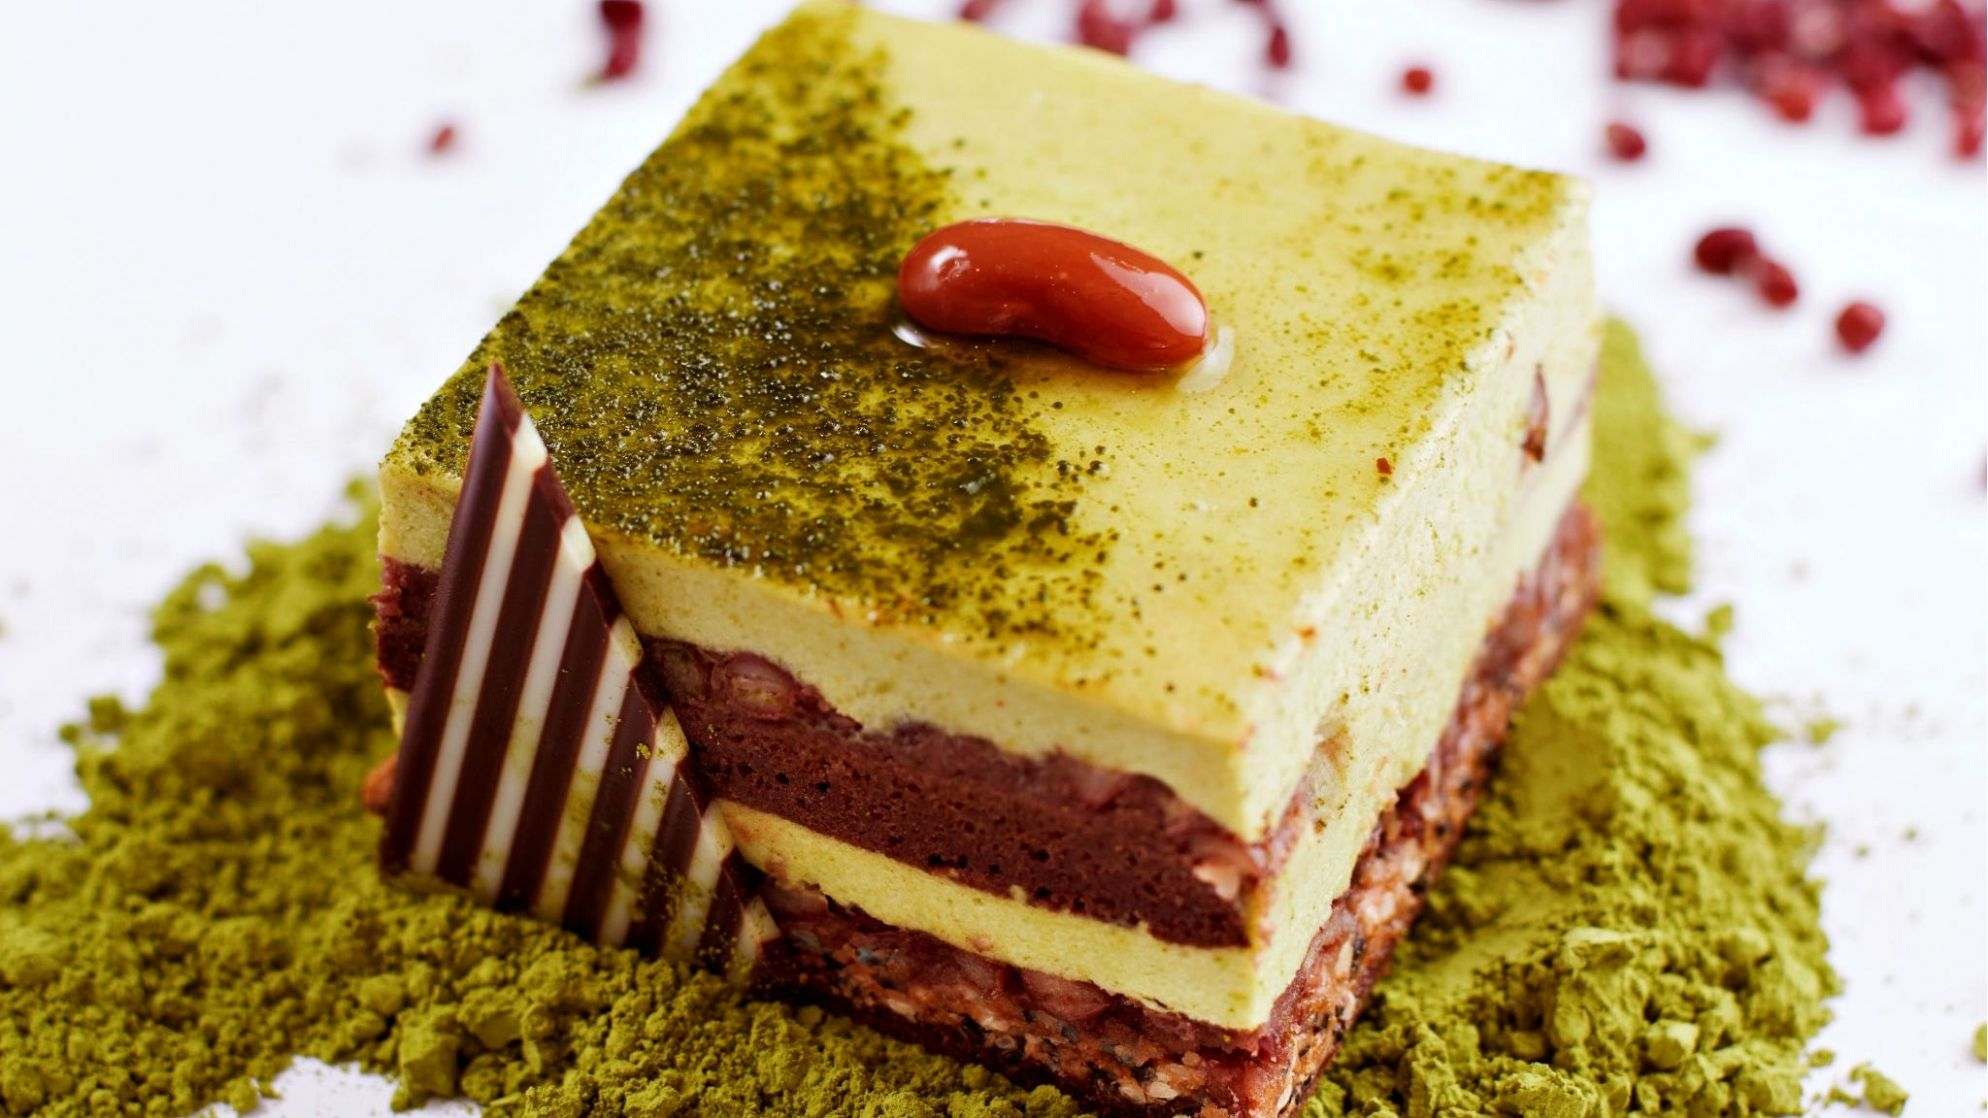 ArtCacao-Green-Tea-Matcha-Mousse-Cake-with-Red-Bean